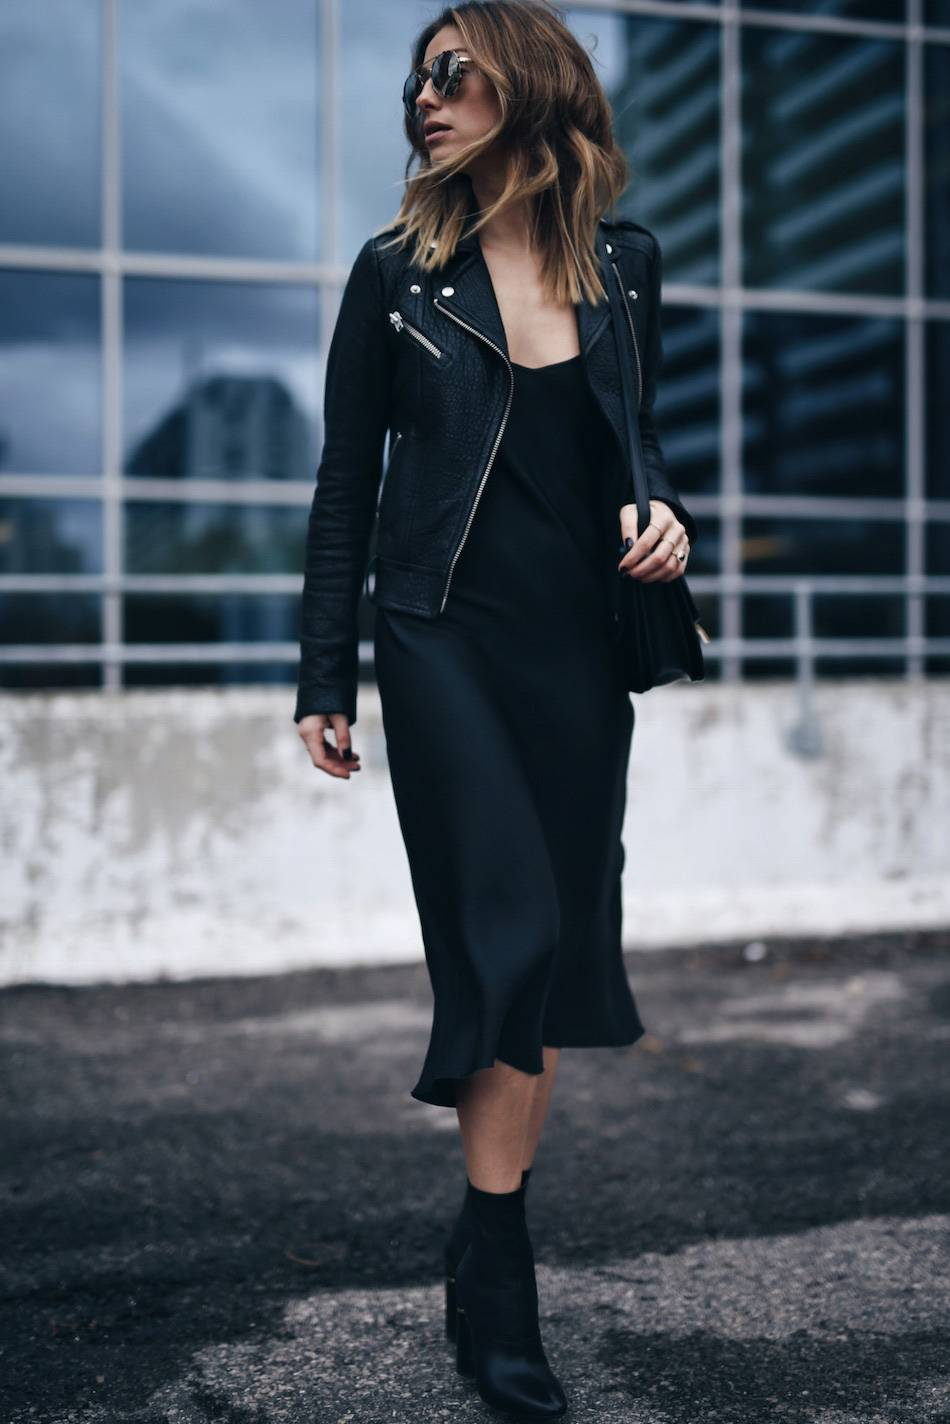 Style-and-beauty-blogger-Jill-Lansky-of-The-August-Diaries-in-a-Mackage-Rumer-leather-jacket-slip-dress-Celine-bag-and-3.1-Phillip-Lim-Kyoto-boots